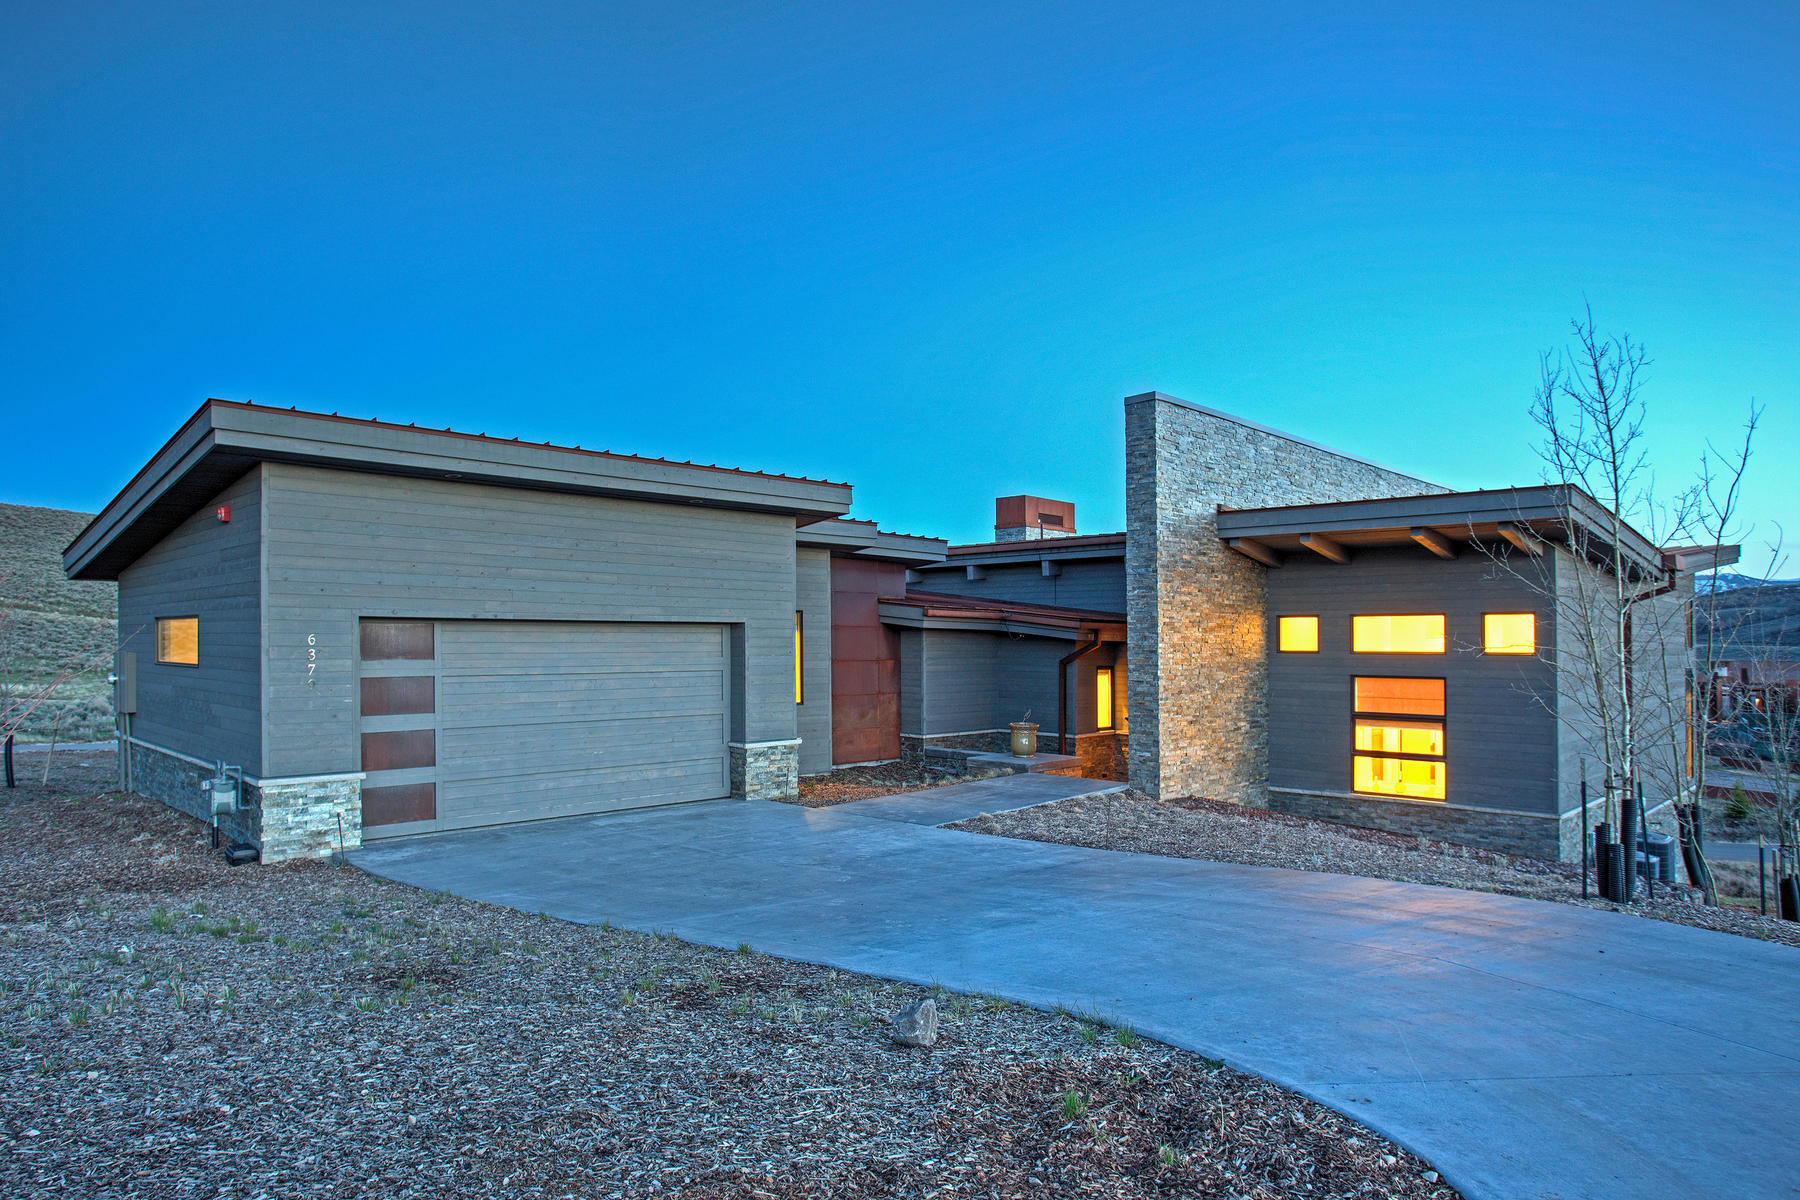 一戸建て のために 売買 アット Model Perfection in Promontory's Newest Neighborhood 6379 Golden Bear Loop West Park City, ユタ, 84098 アメリカ合衆国